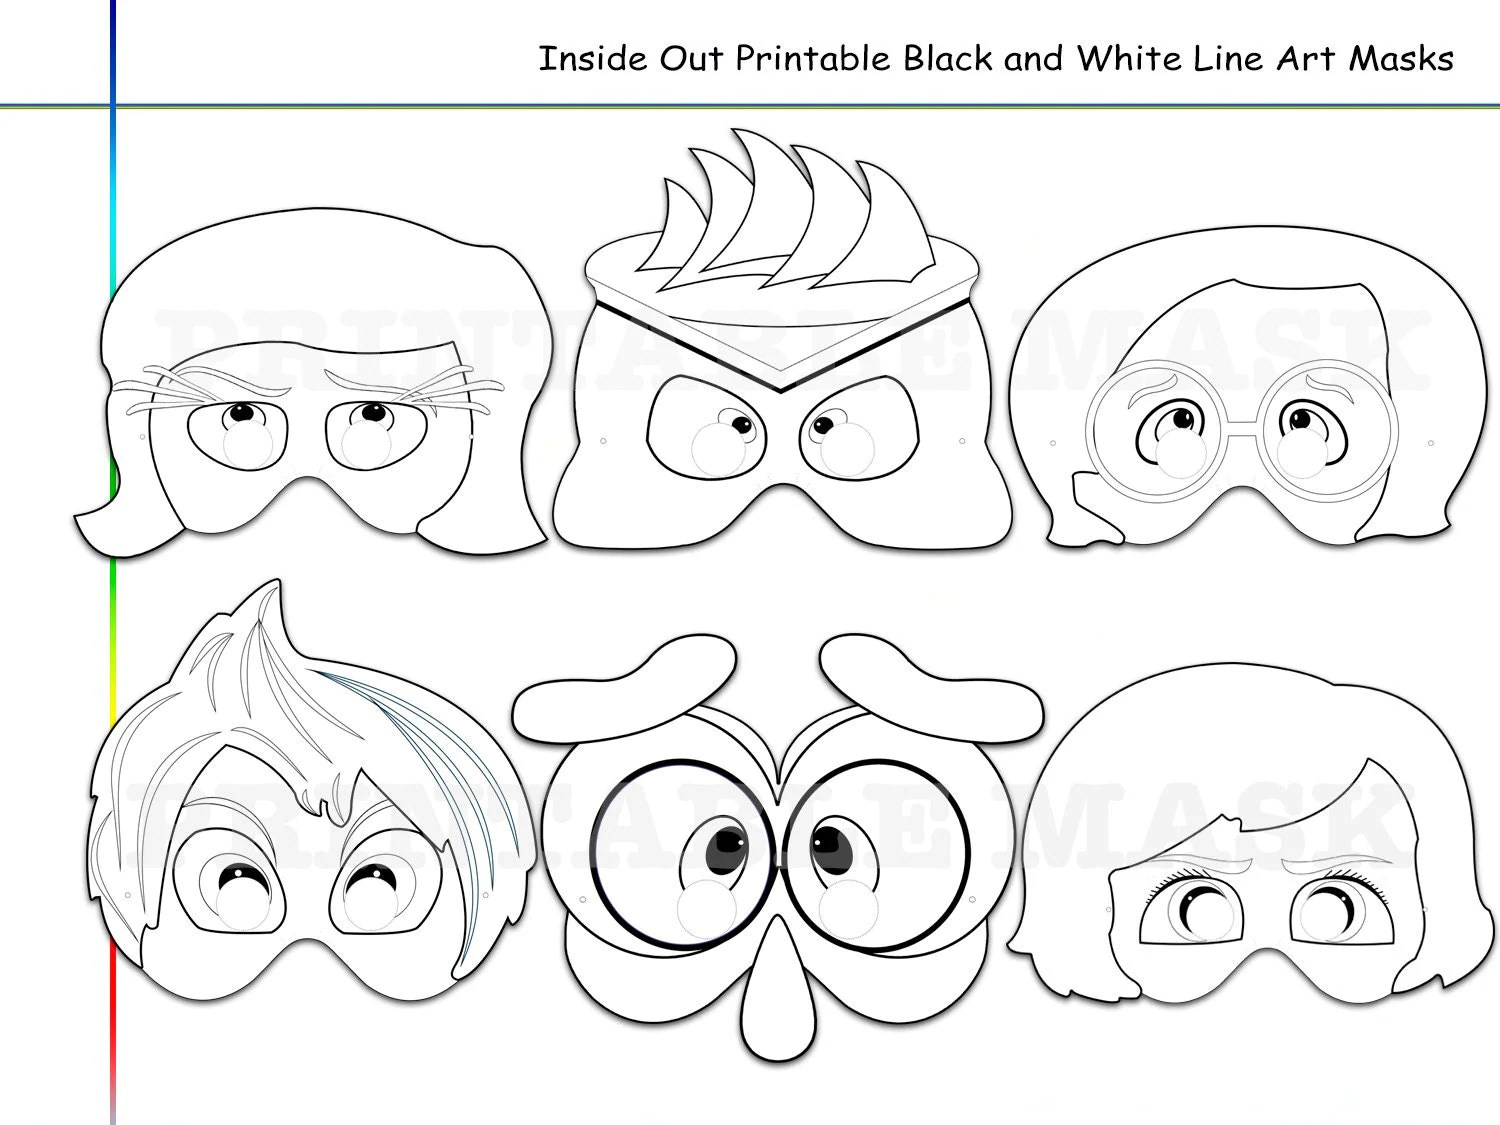 Coloring Pages Inside Out Printable Black and White Line Art